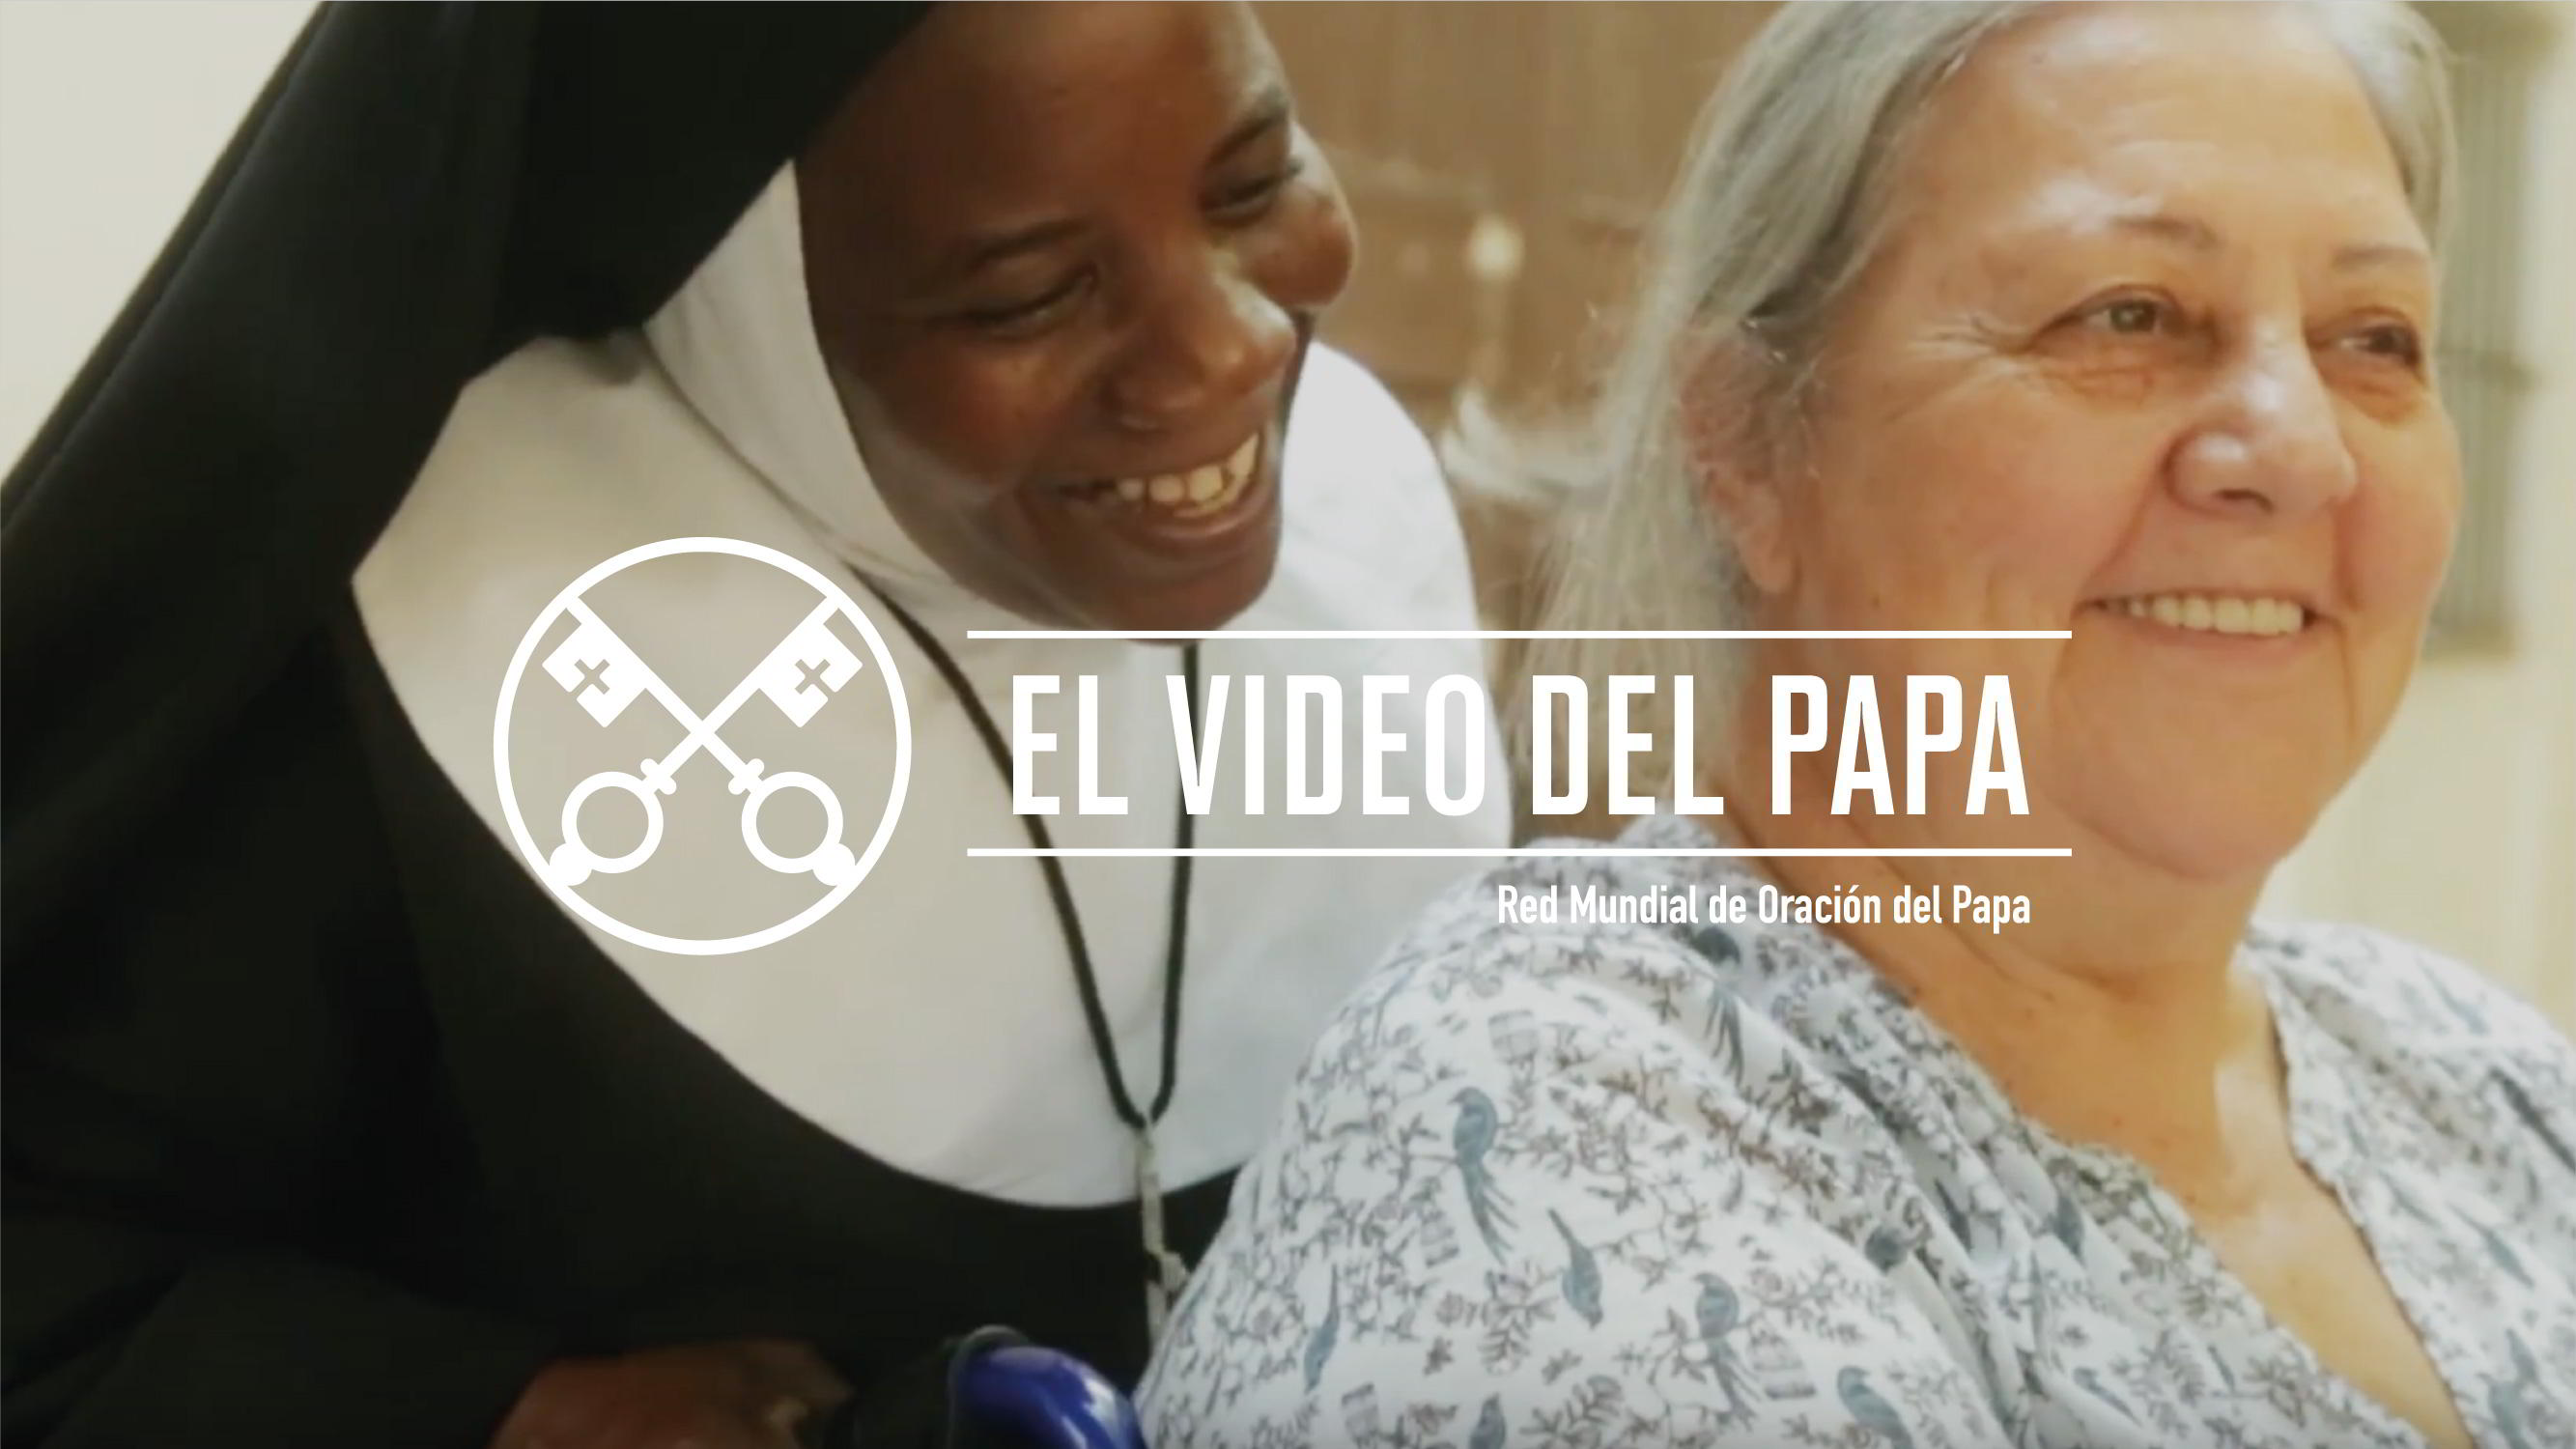 Official Image - The Pope Video 10 2018 - Mission of Religious - 2 Spanish